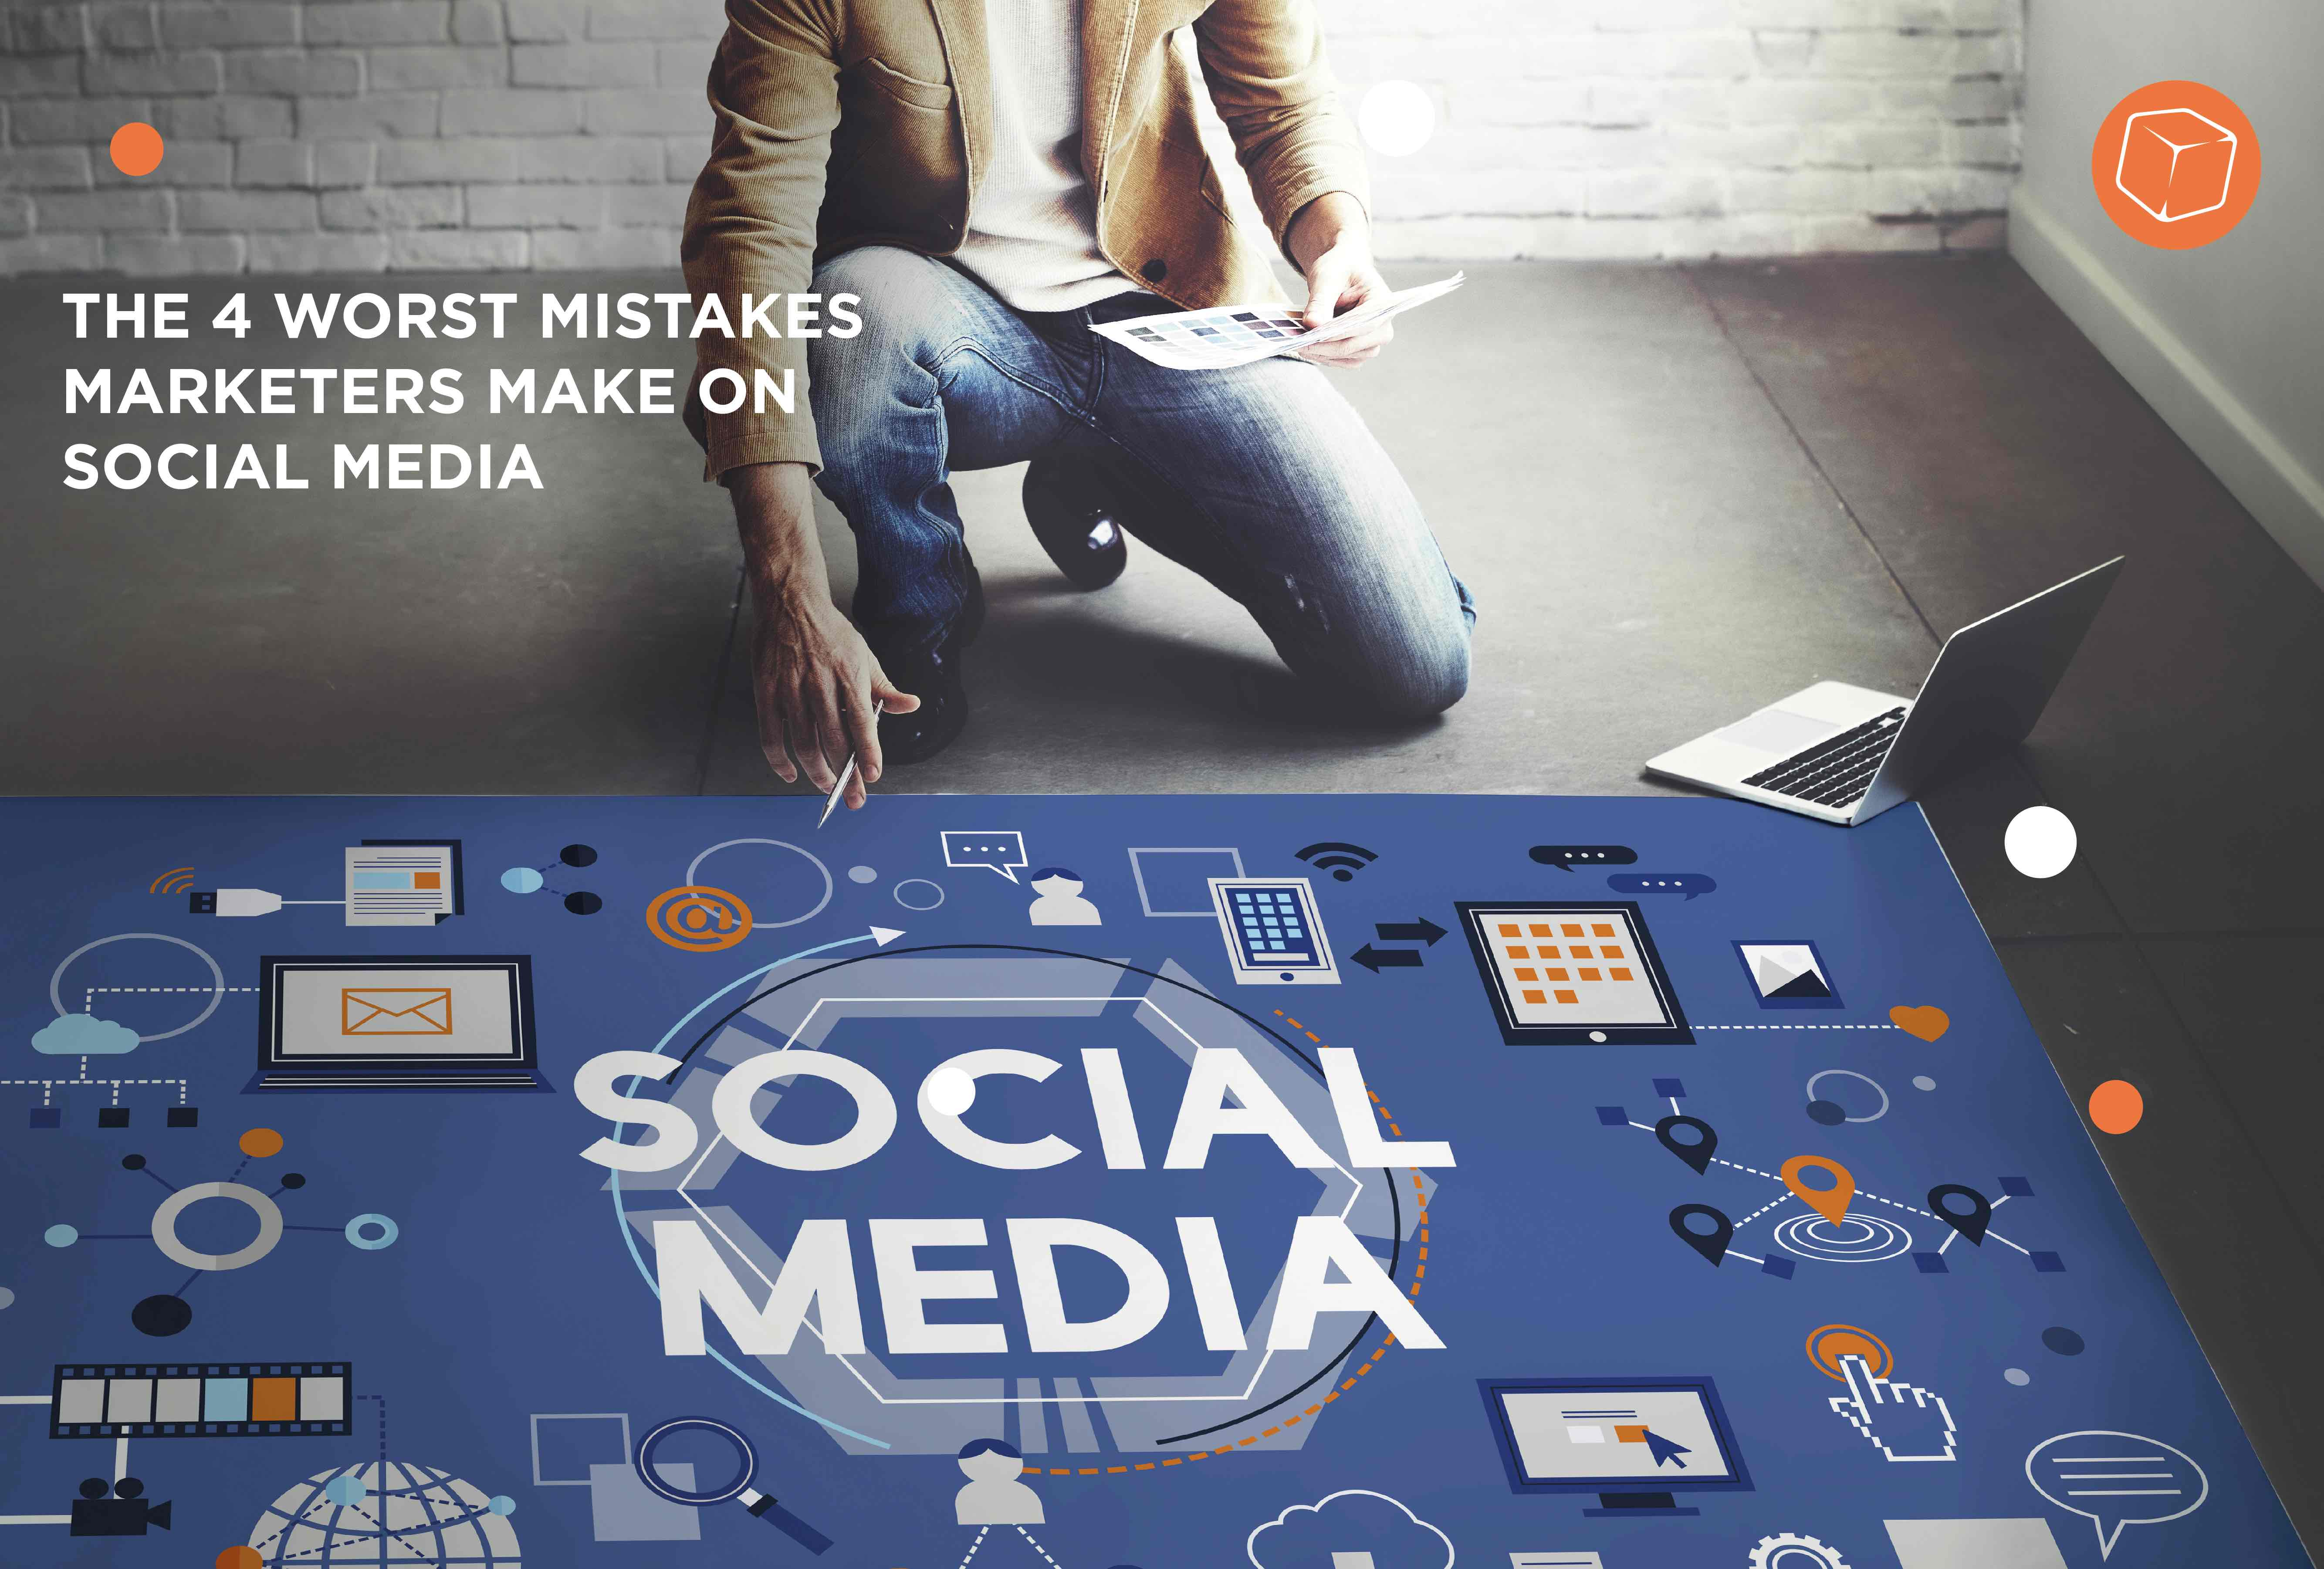 The 4 Worst Mistakes On Social Media